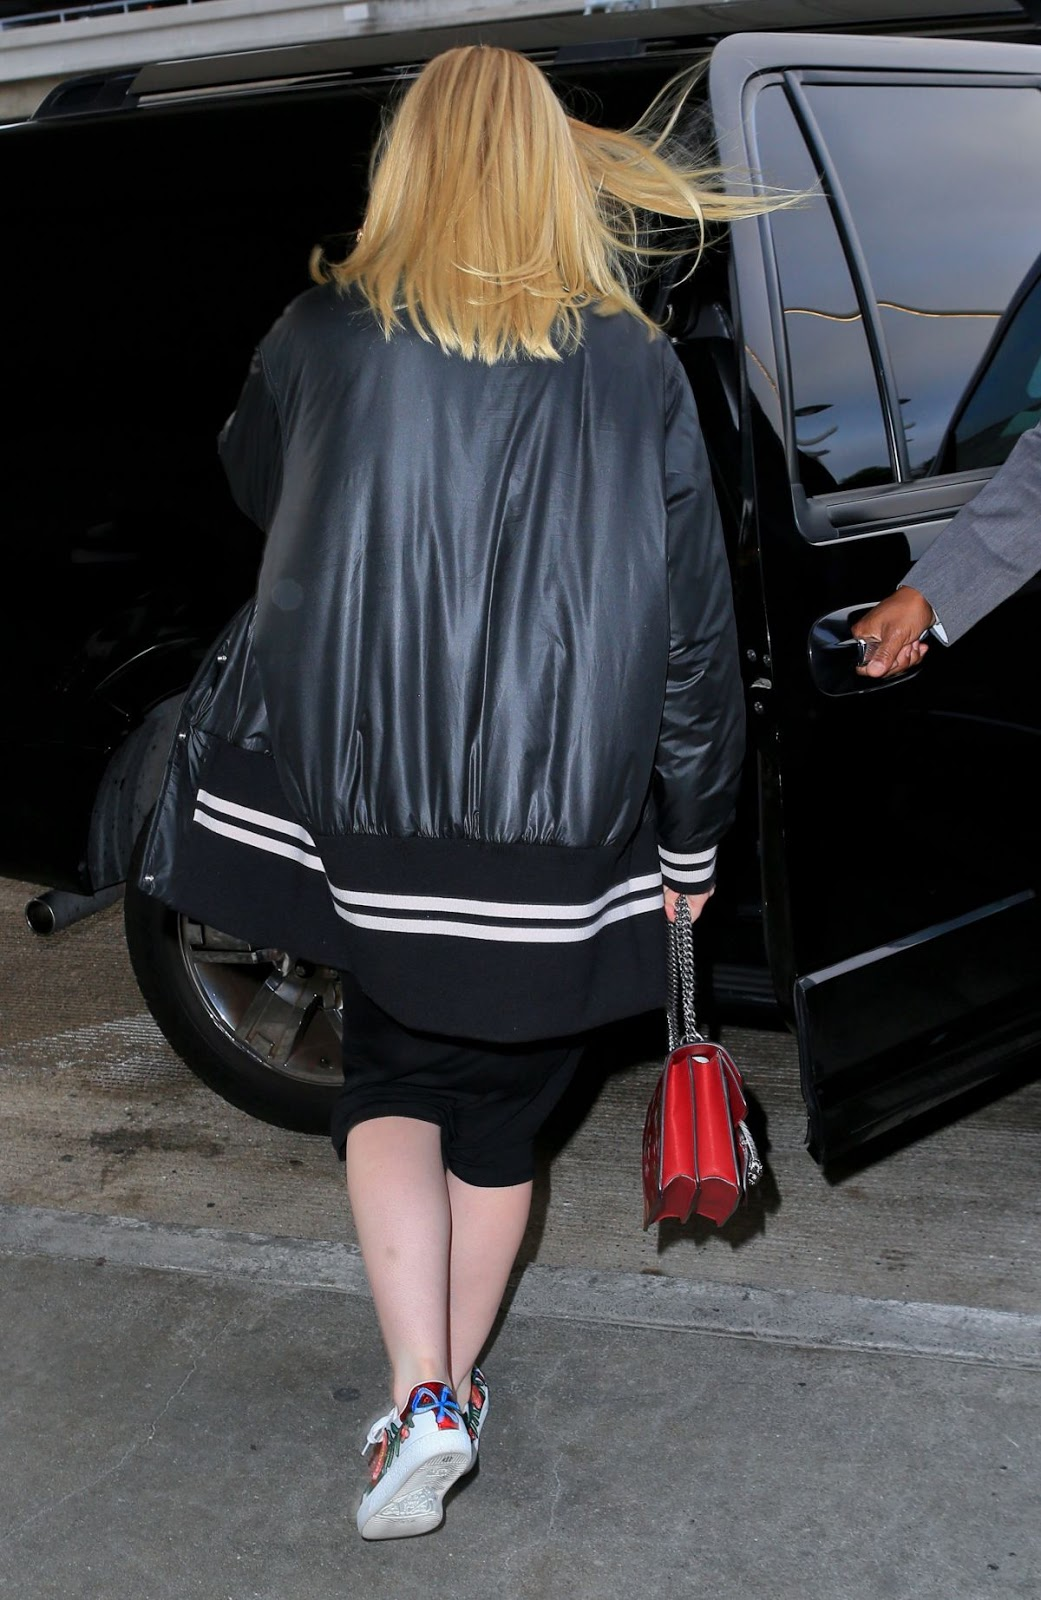 Photos of Elle Fanning At Lax Airport In Los Angeles